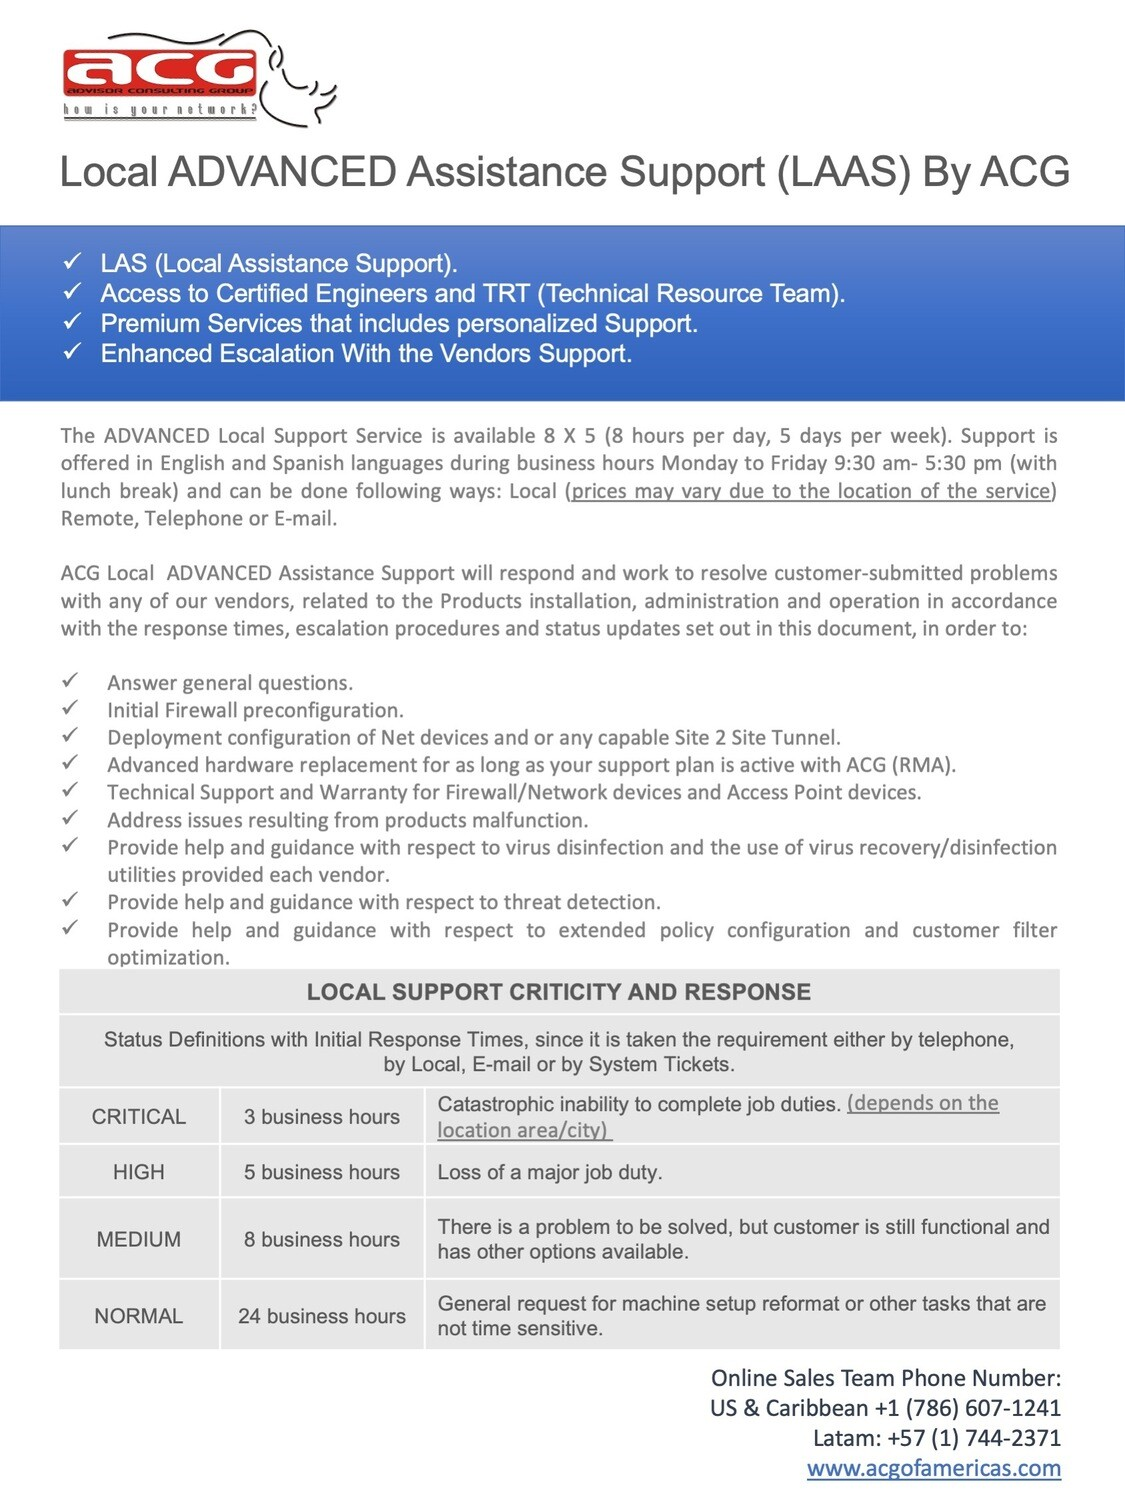 Local ADVANCED Assistance Support (LAAS) (Price per Hour)